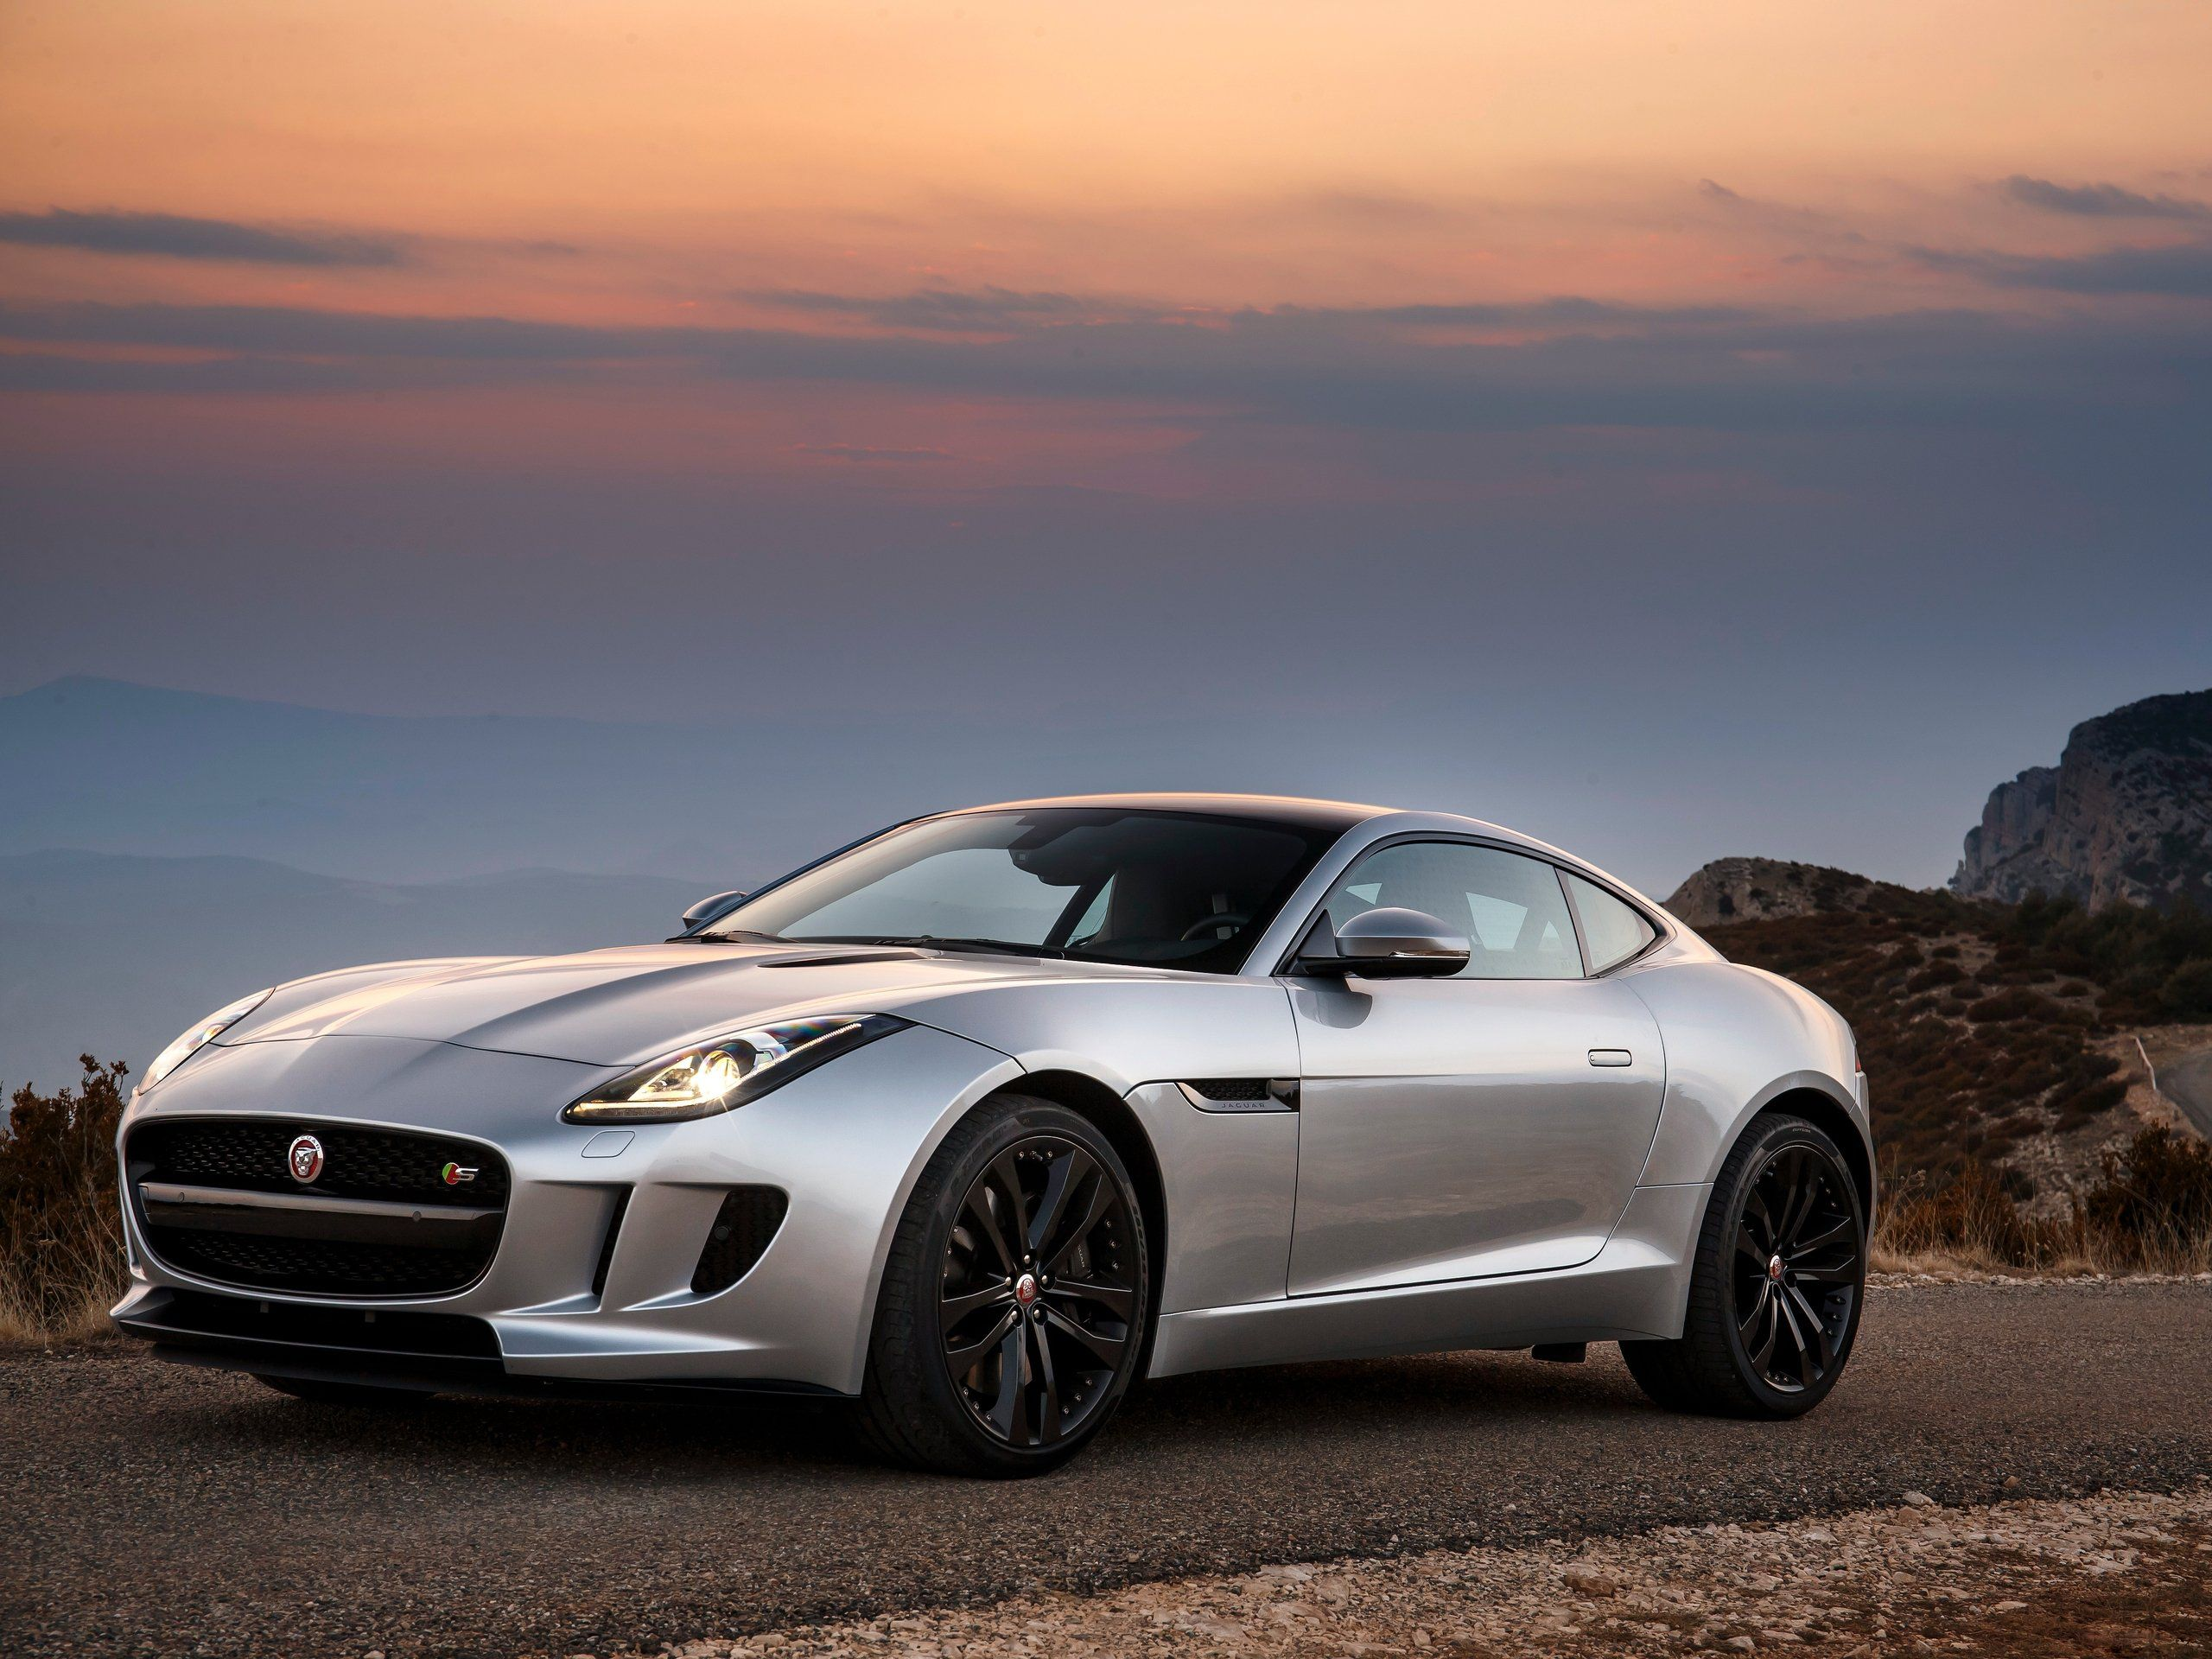 Jaguar F Type Coupe 2015 Hd Images And Photos Jaguar F Type Jaguar E Type Jaguar E